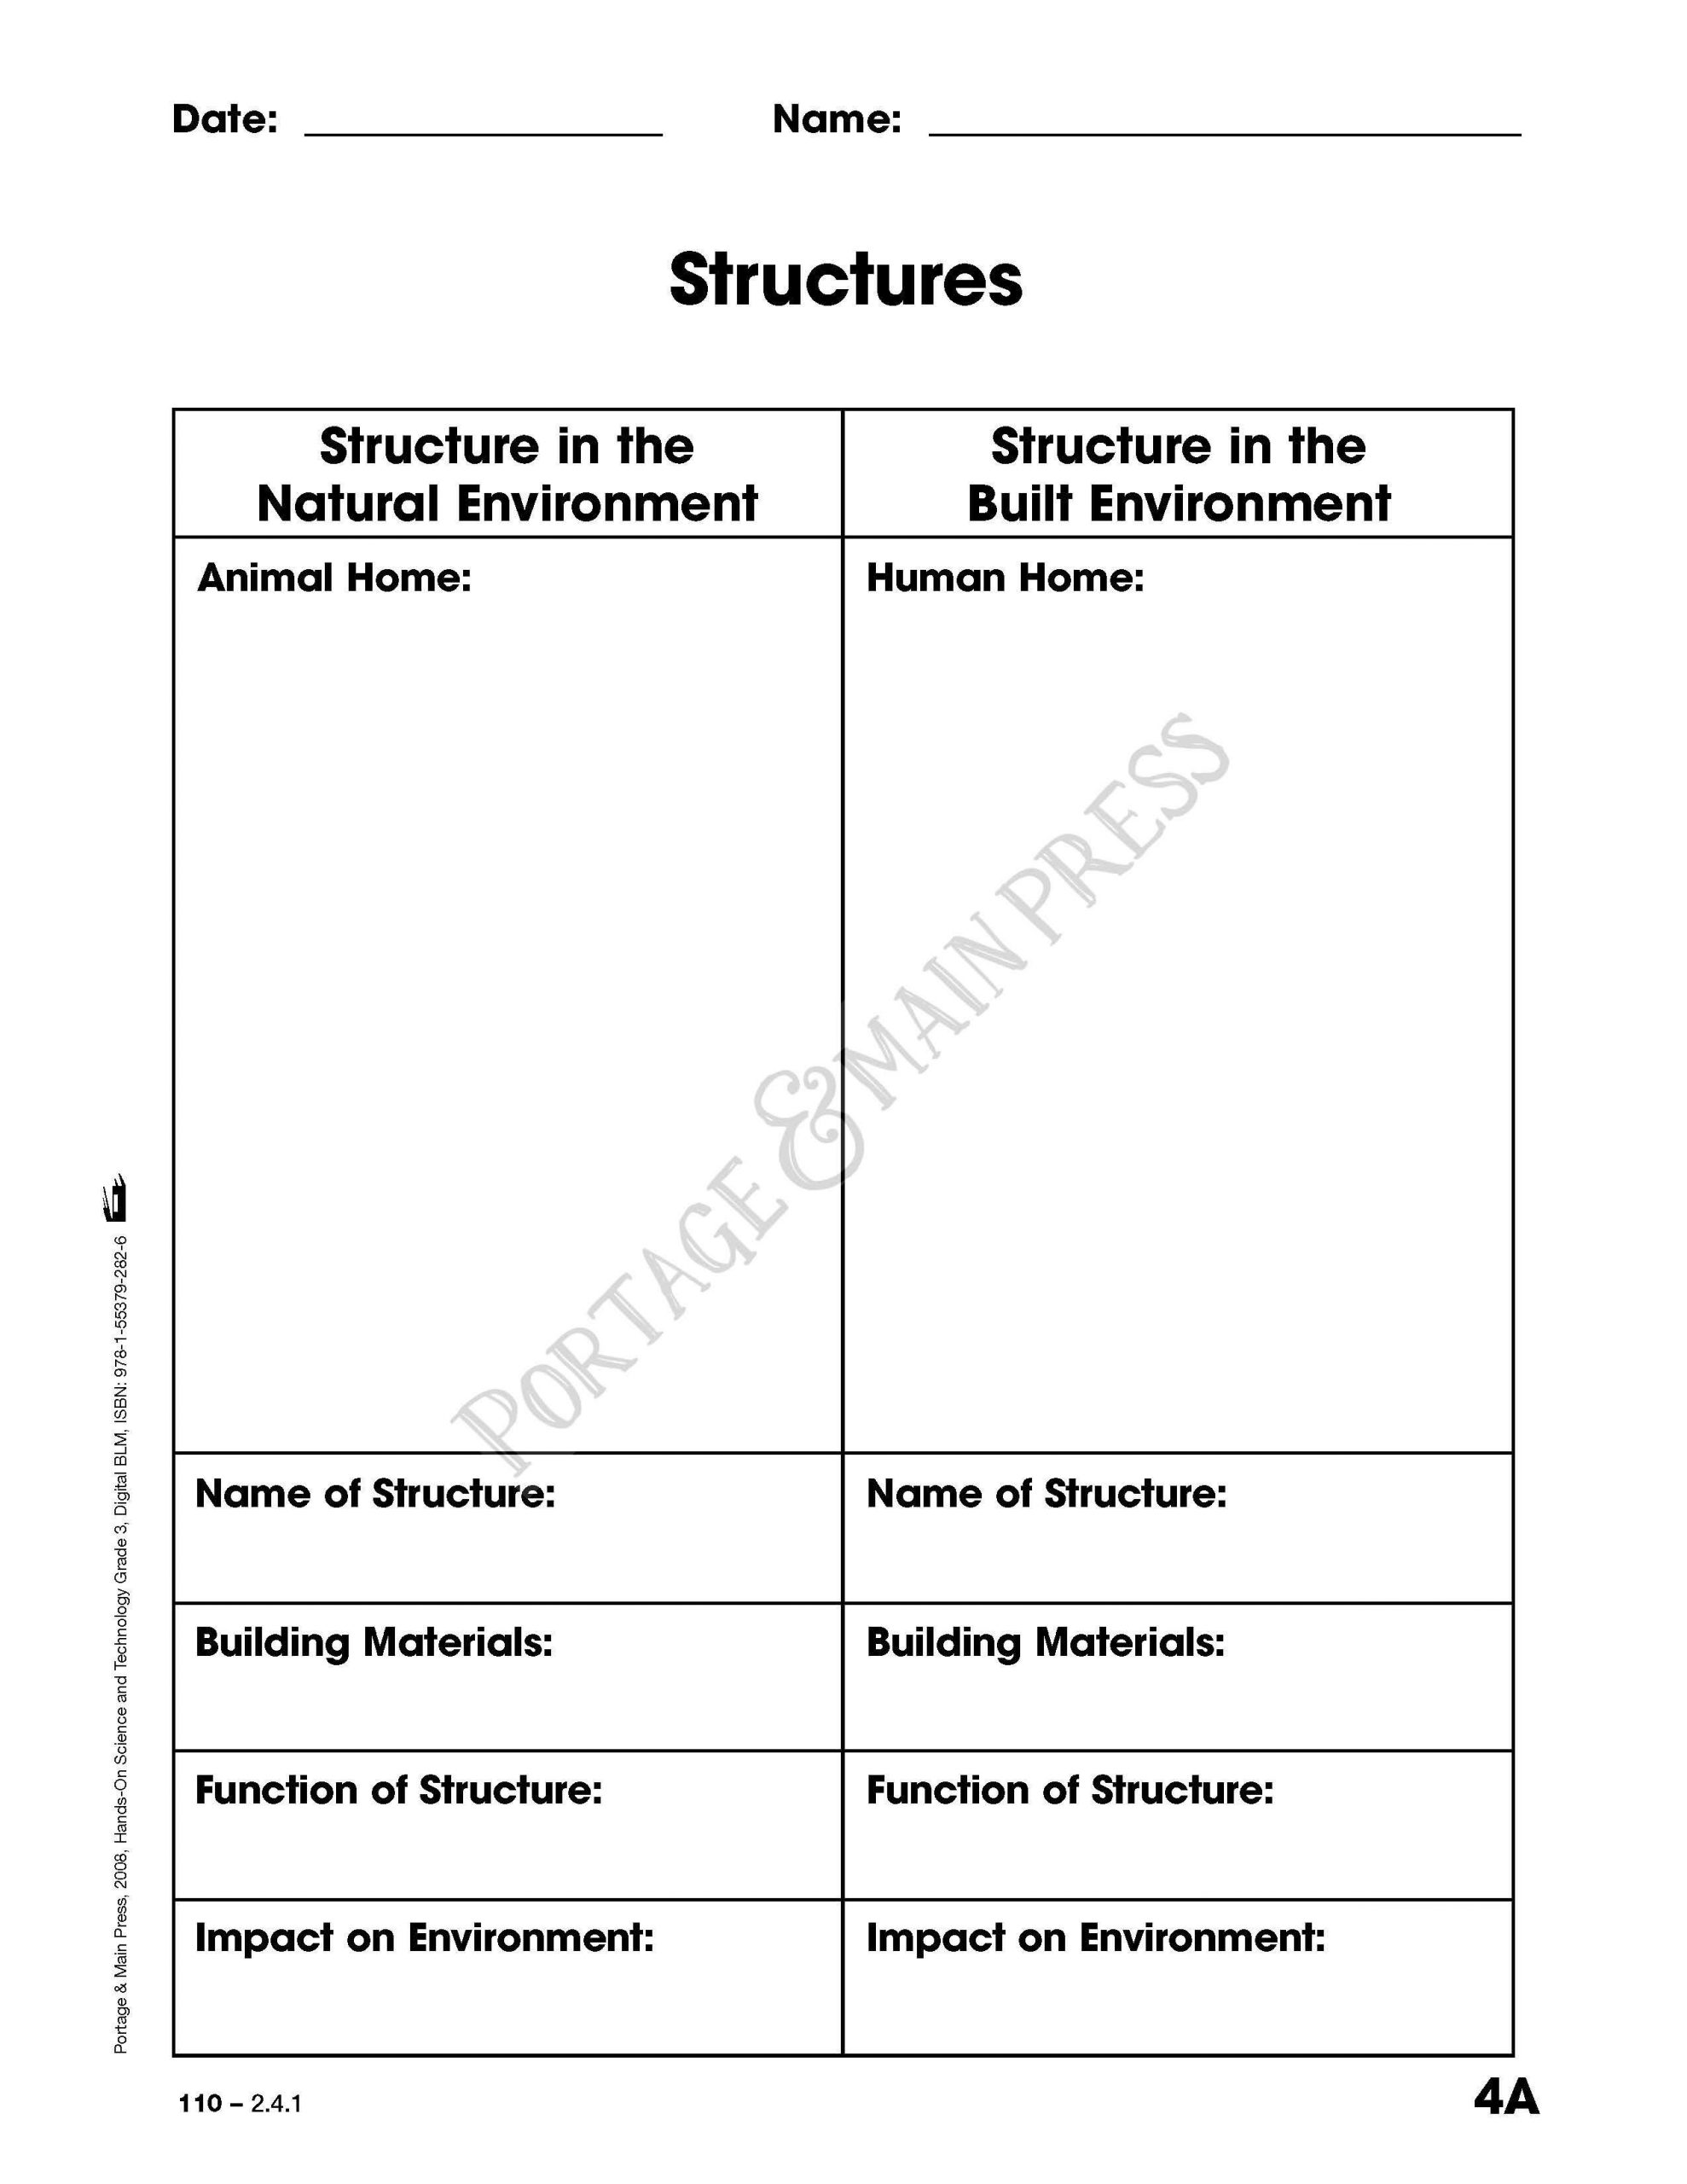 Text Structure 3rd Grade Worksheets Portage & Main Press Educational Books for Teachers